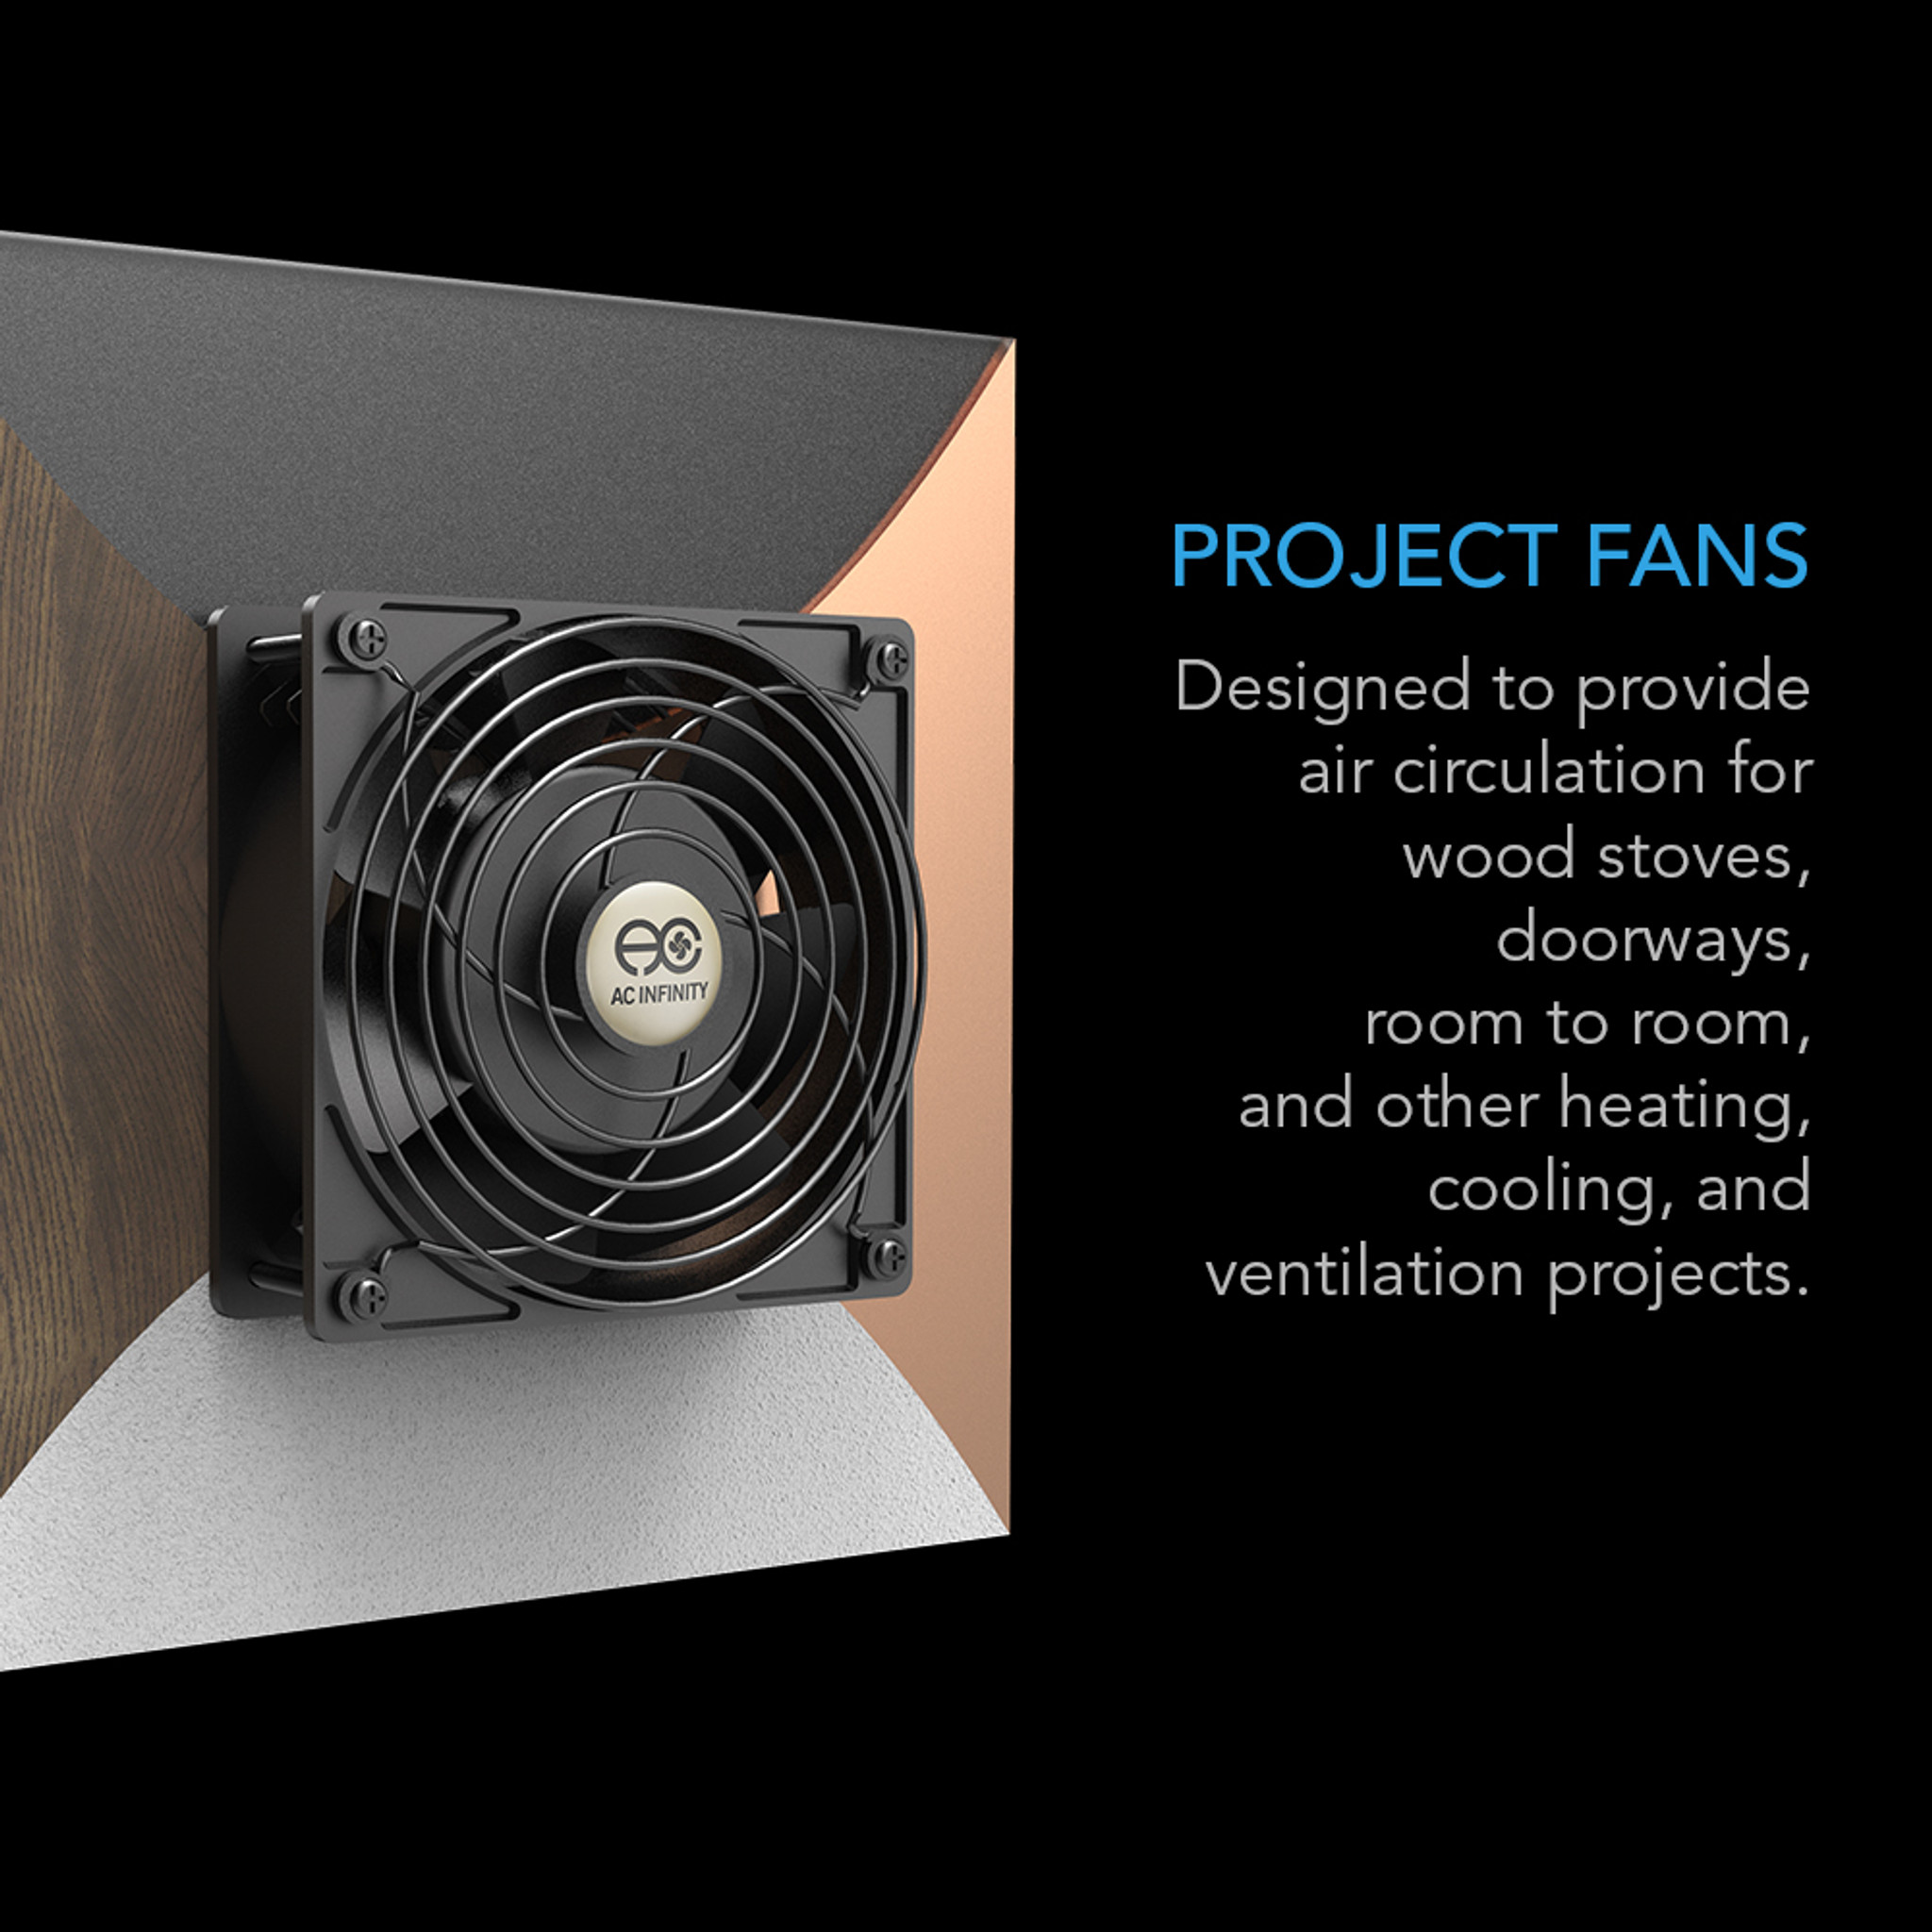 120mm Muffin Fan with Speed Controller AC Infinity AXIAL S1238 Fireplace Wood Stove Room to Room for Doorway Circulation Projects